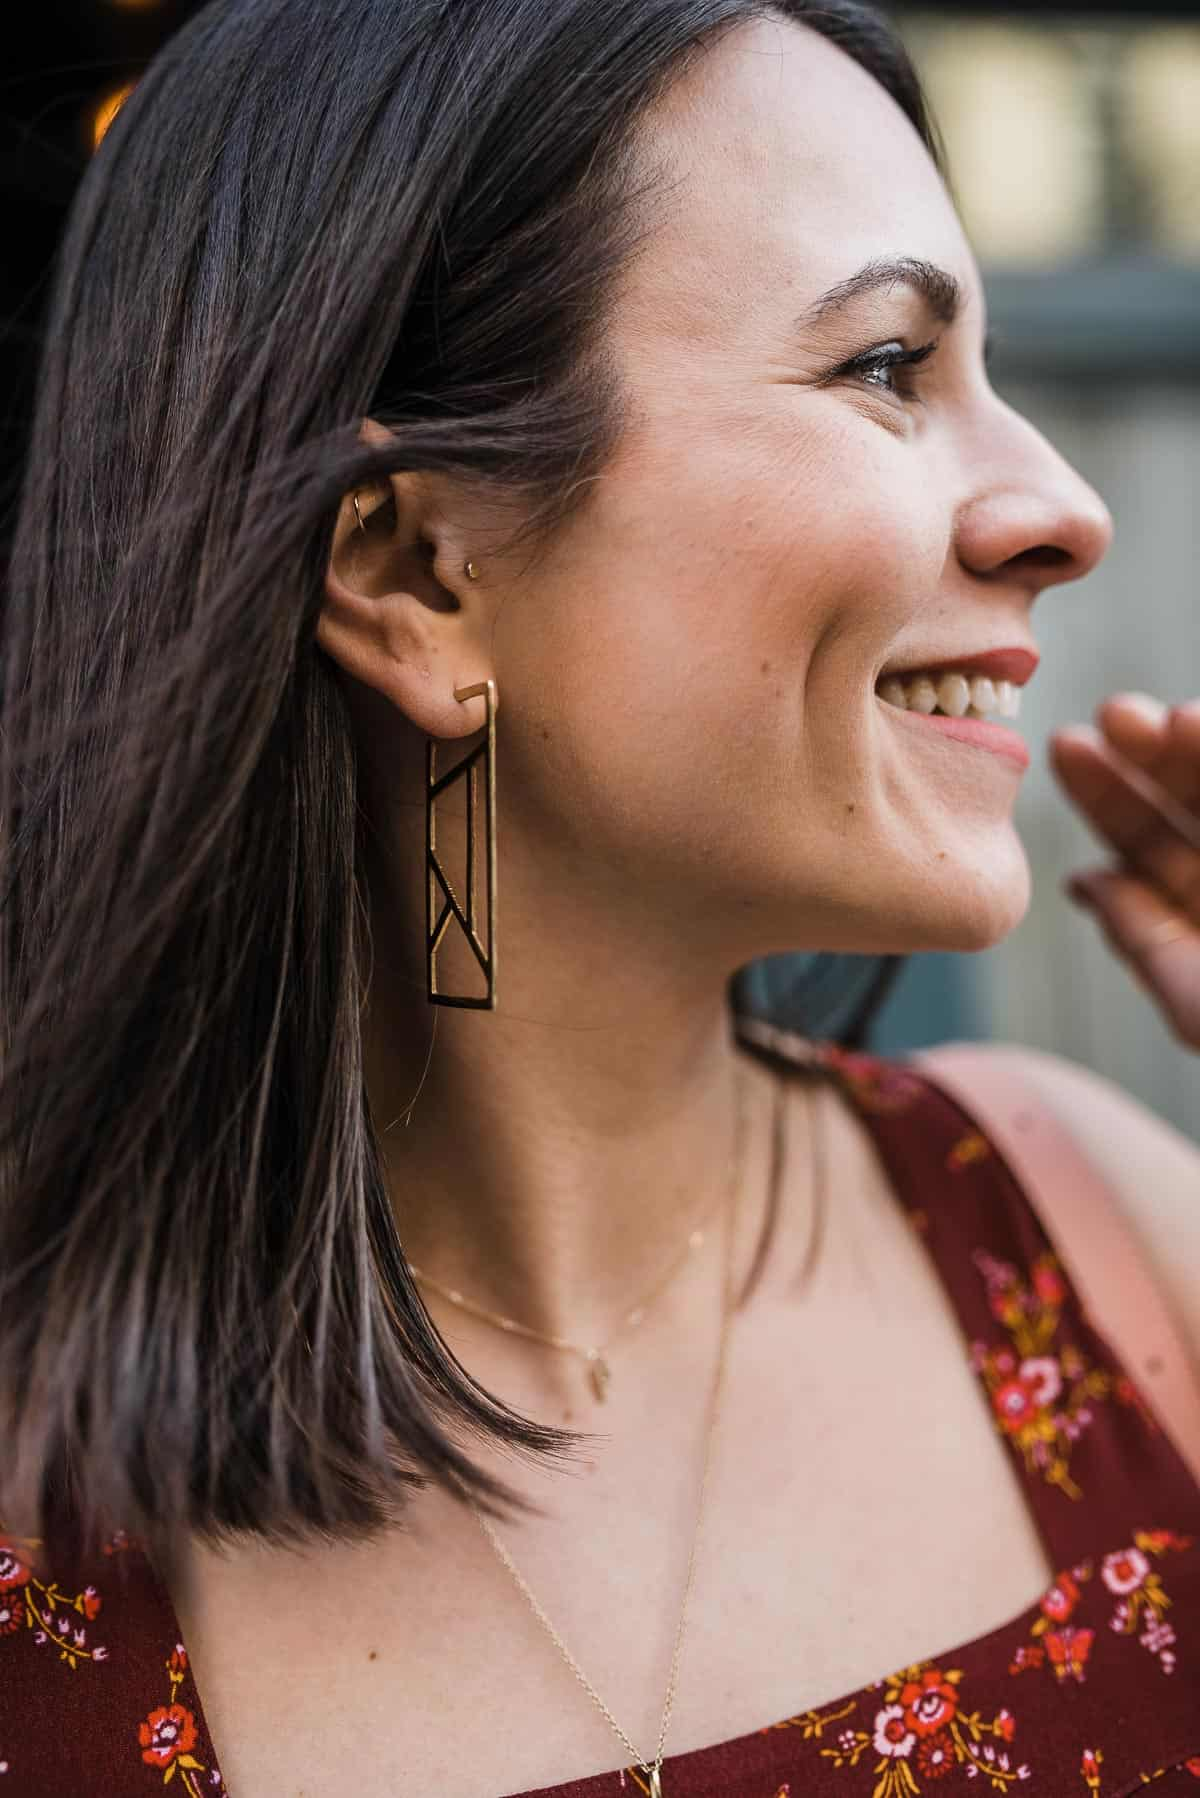 INK + ALLOY EARRINGS FEATURED